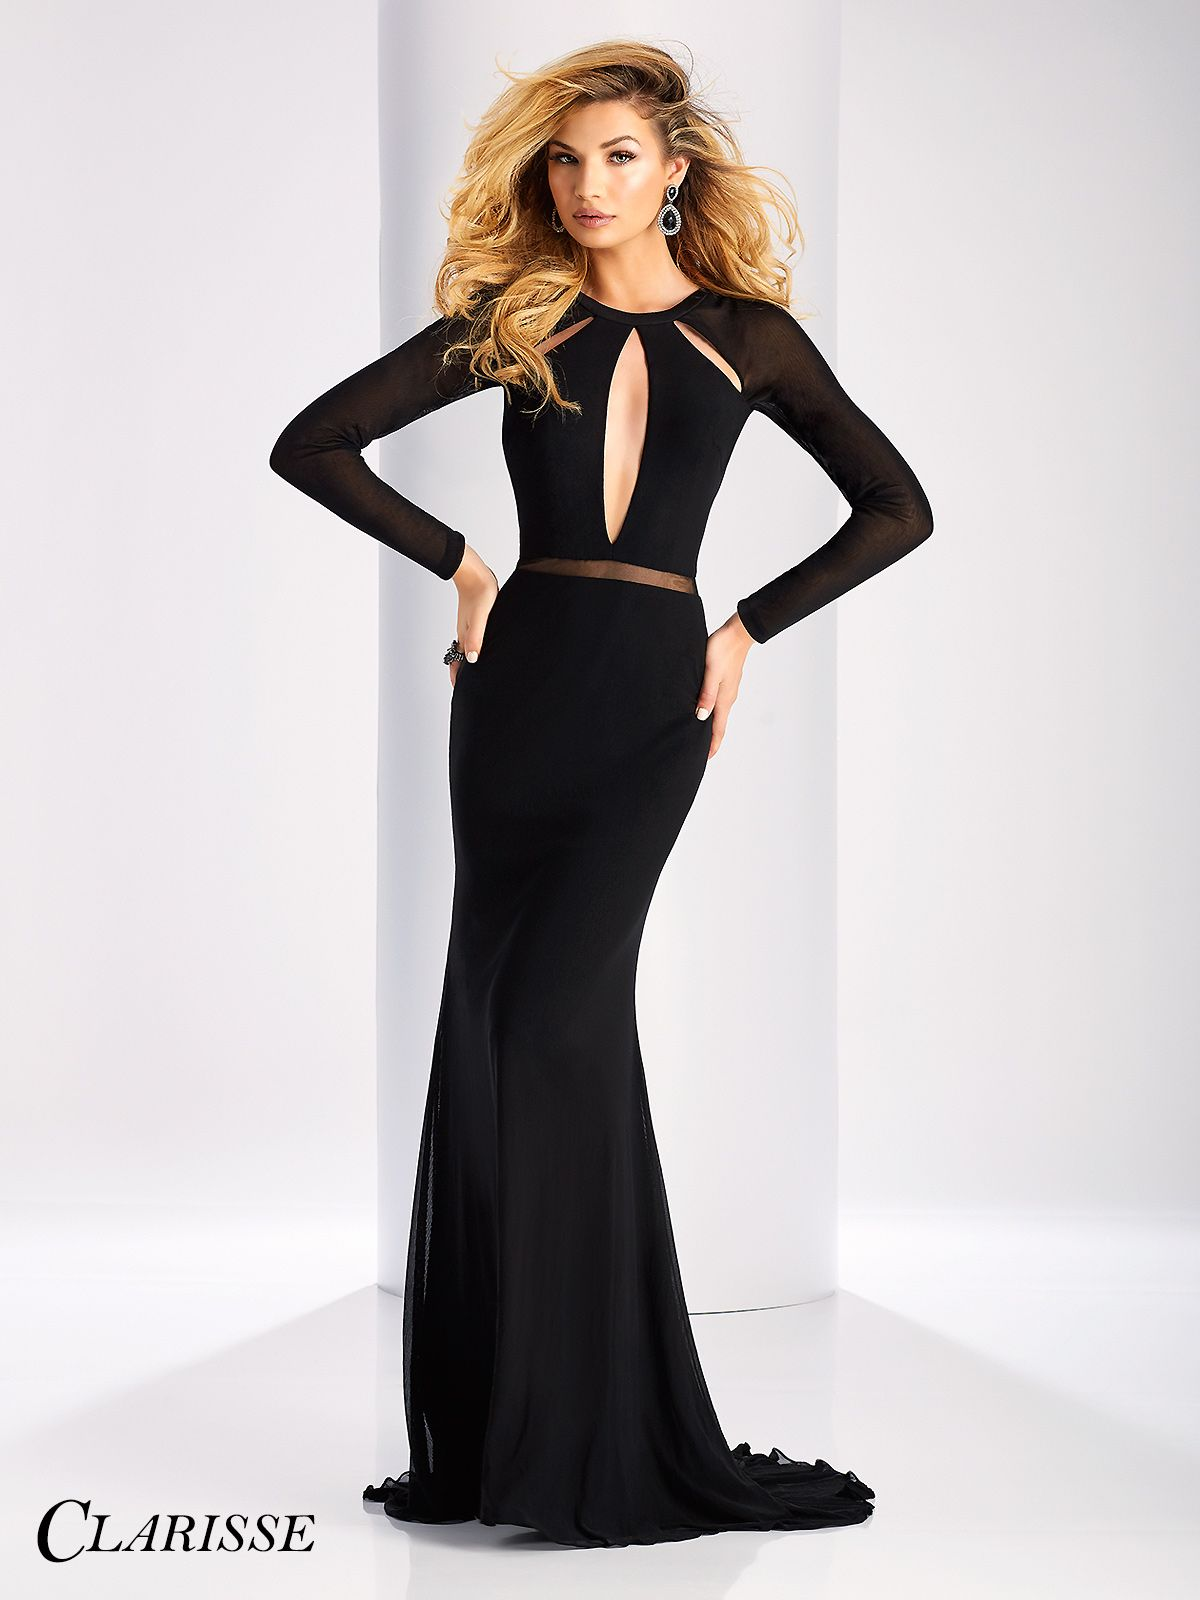 Clarisse Long Sleeve Cutout Detail Dress 4859 | Neckline, Prom and ...